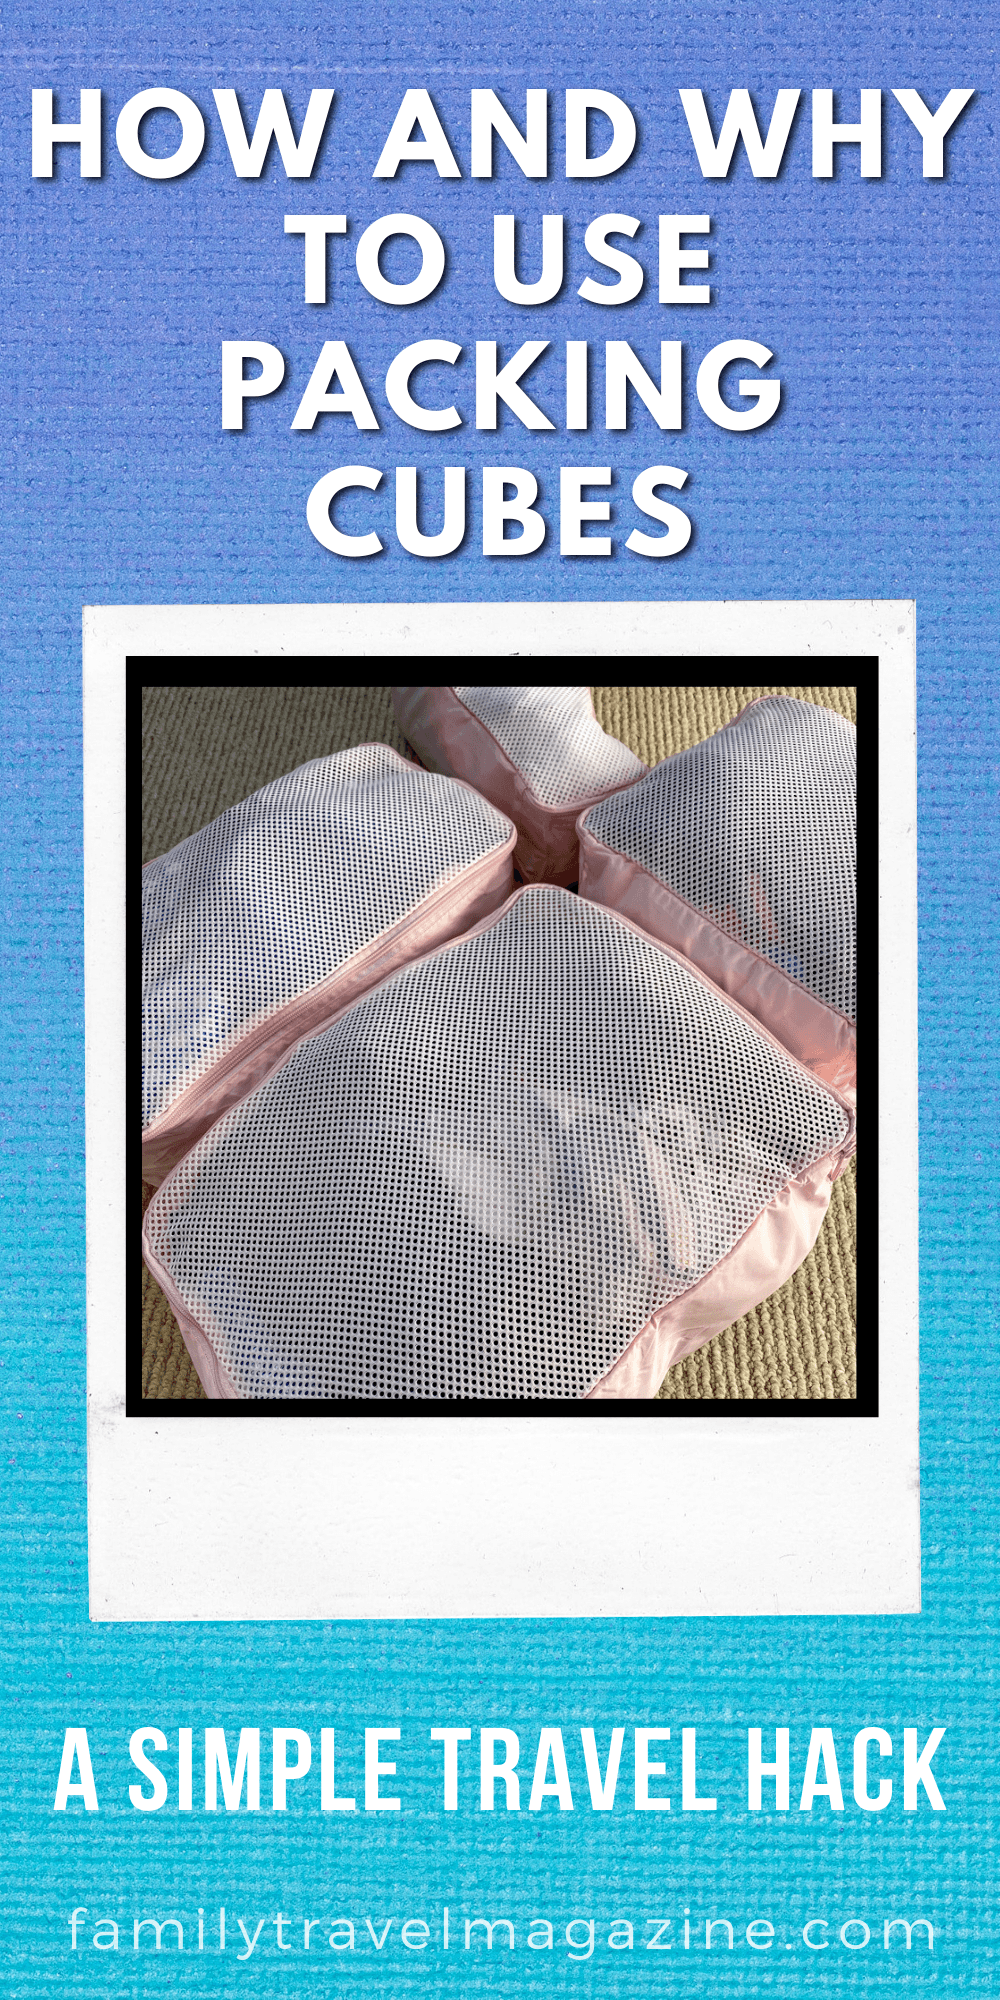 One of our favorite travel and packing tips and hacks is using packing cubes. Here's everything you need to know about how to use packing cubes including the best types to buy, how to pack in your carry on, and how to pack for the best compression.